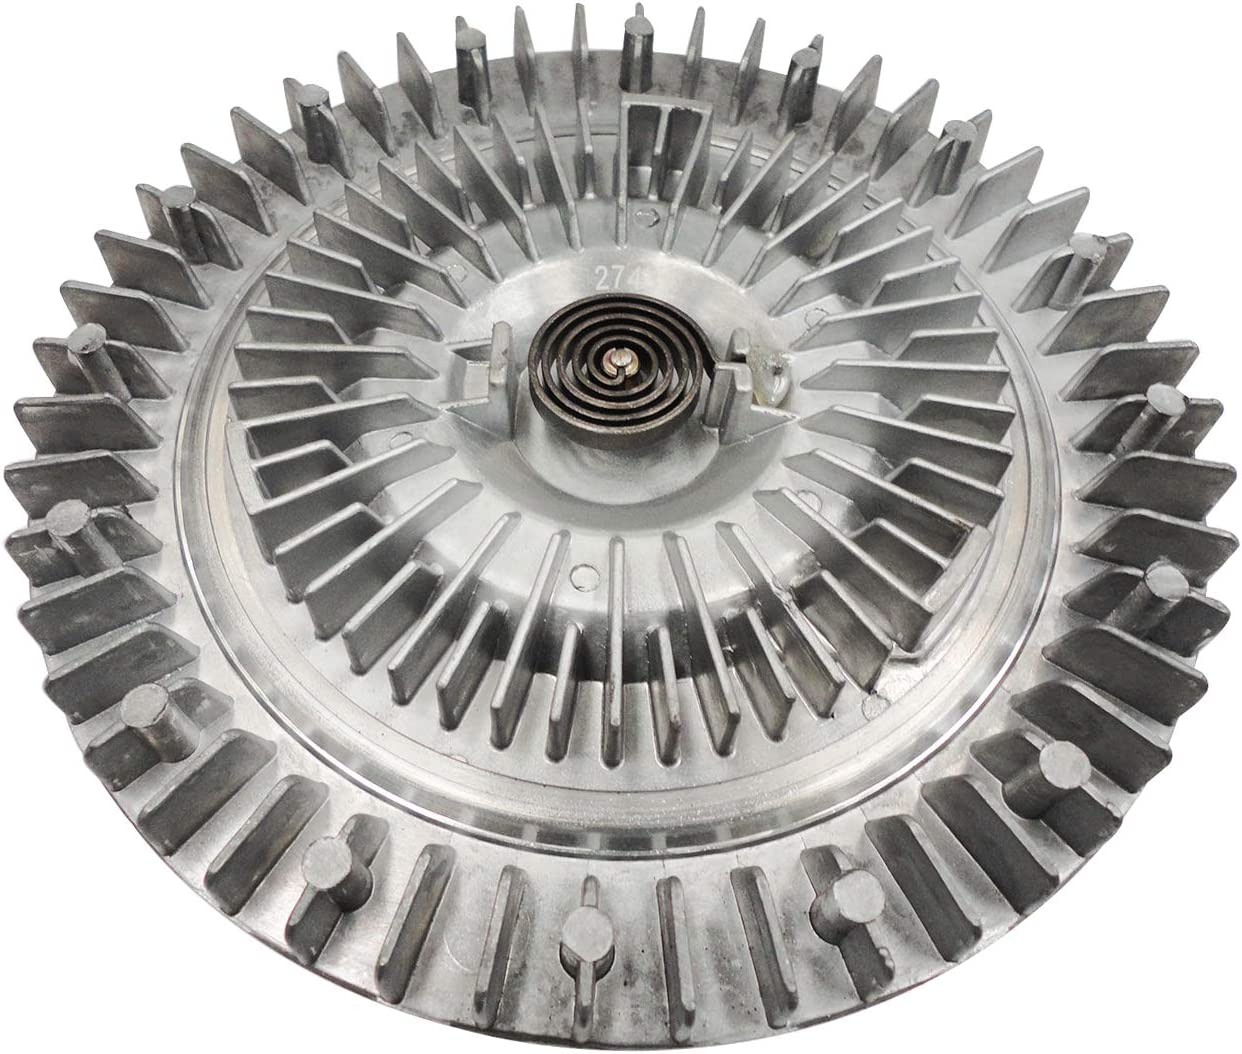 New Fan Clutch for Jeep Grand Cherokee 1999 to 2008